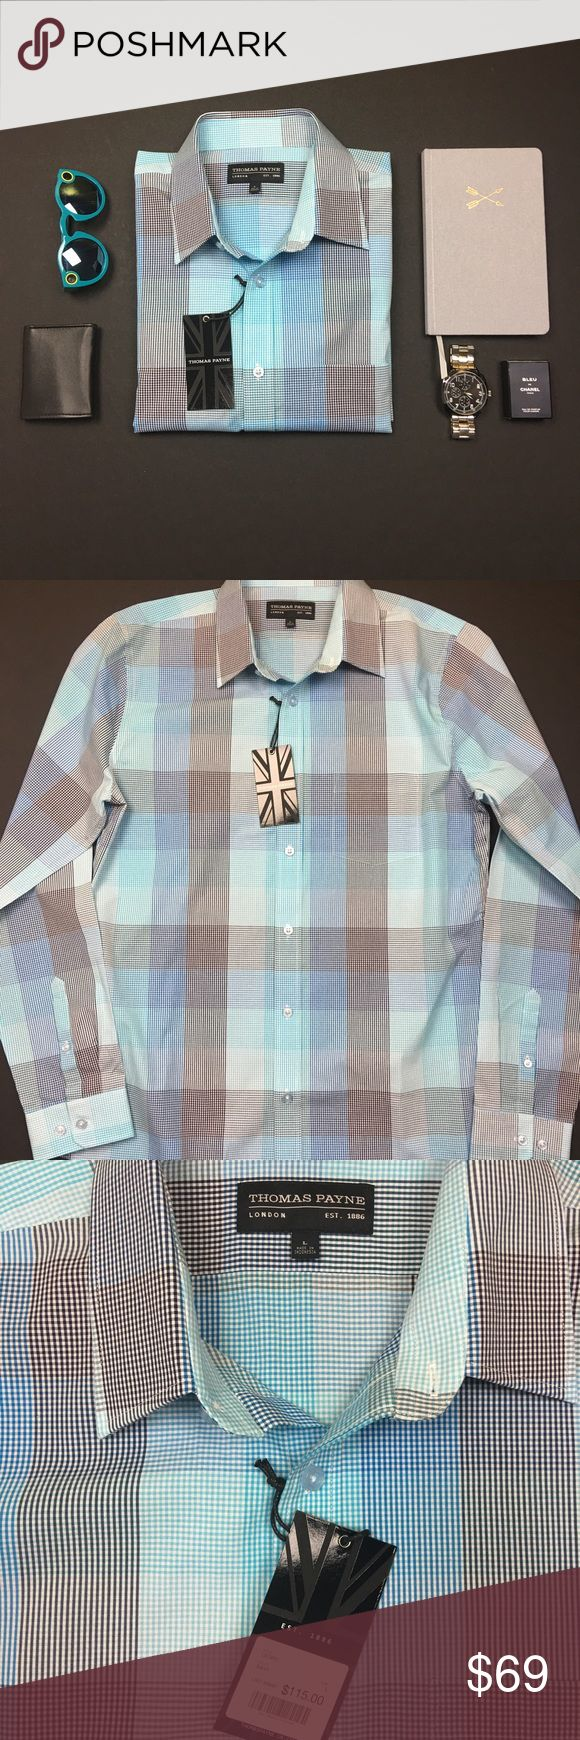 Thomas Payne Blue Striped Button Down Dress Shirt New with tags in Excellent Condition. No Trades. No PayPal. Smoke & Pet Free Home. Please Ask Questions. Like what you see but the price too high? Make an offer. Does not need cufflinks. Thomas Payne Shirts Dress Shirts